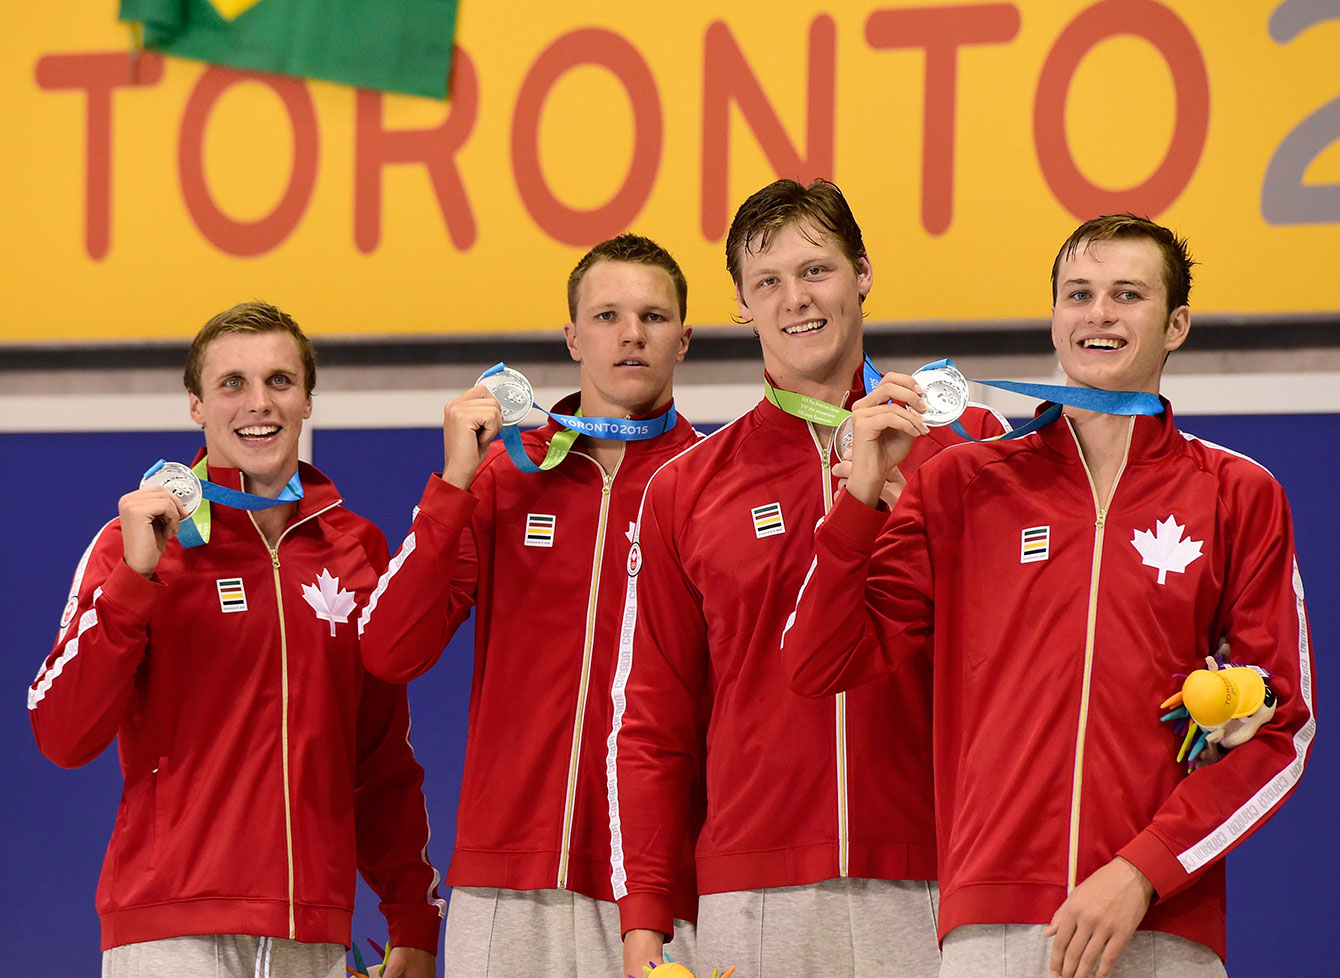 Canadian swimmers Santo Condorelli, left to right, Karl Krug, Evan Van Moerkerke and Yuri Kisil smile as they hold their medals after a second place finish in the men's 4x100 freestyle at TO2015.